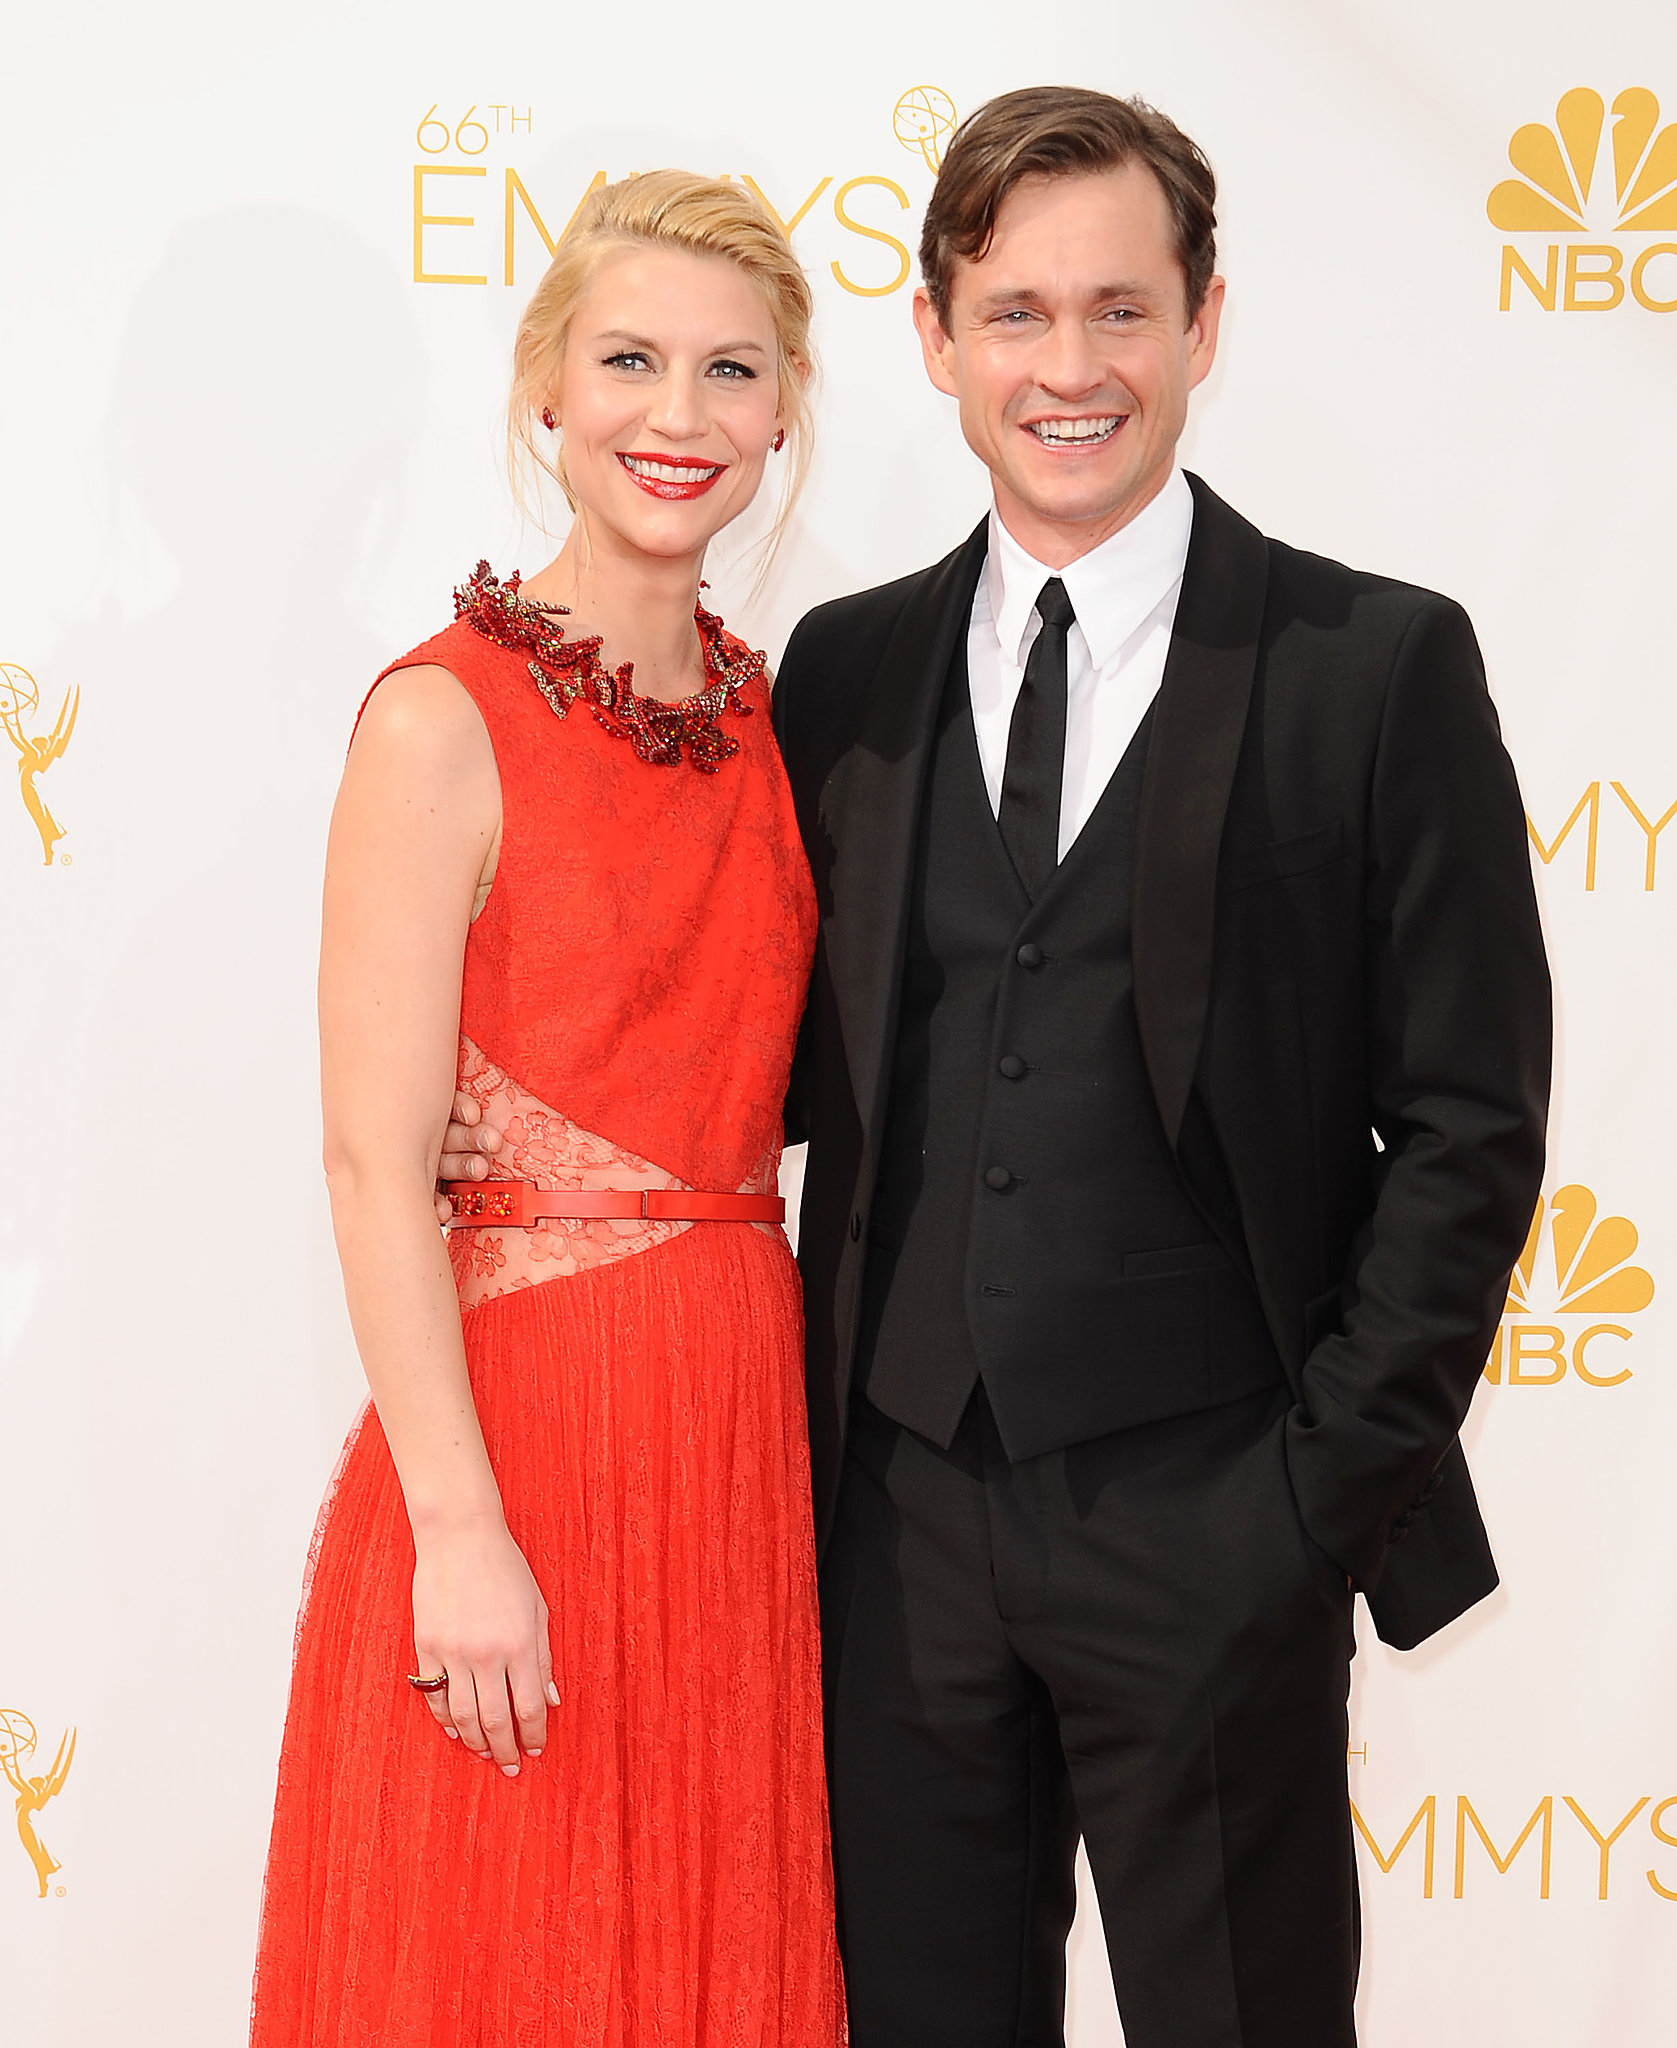 Claire Danes and Hugh Dancy had their red carpet pose perfected.